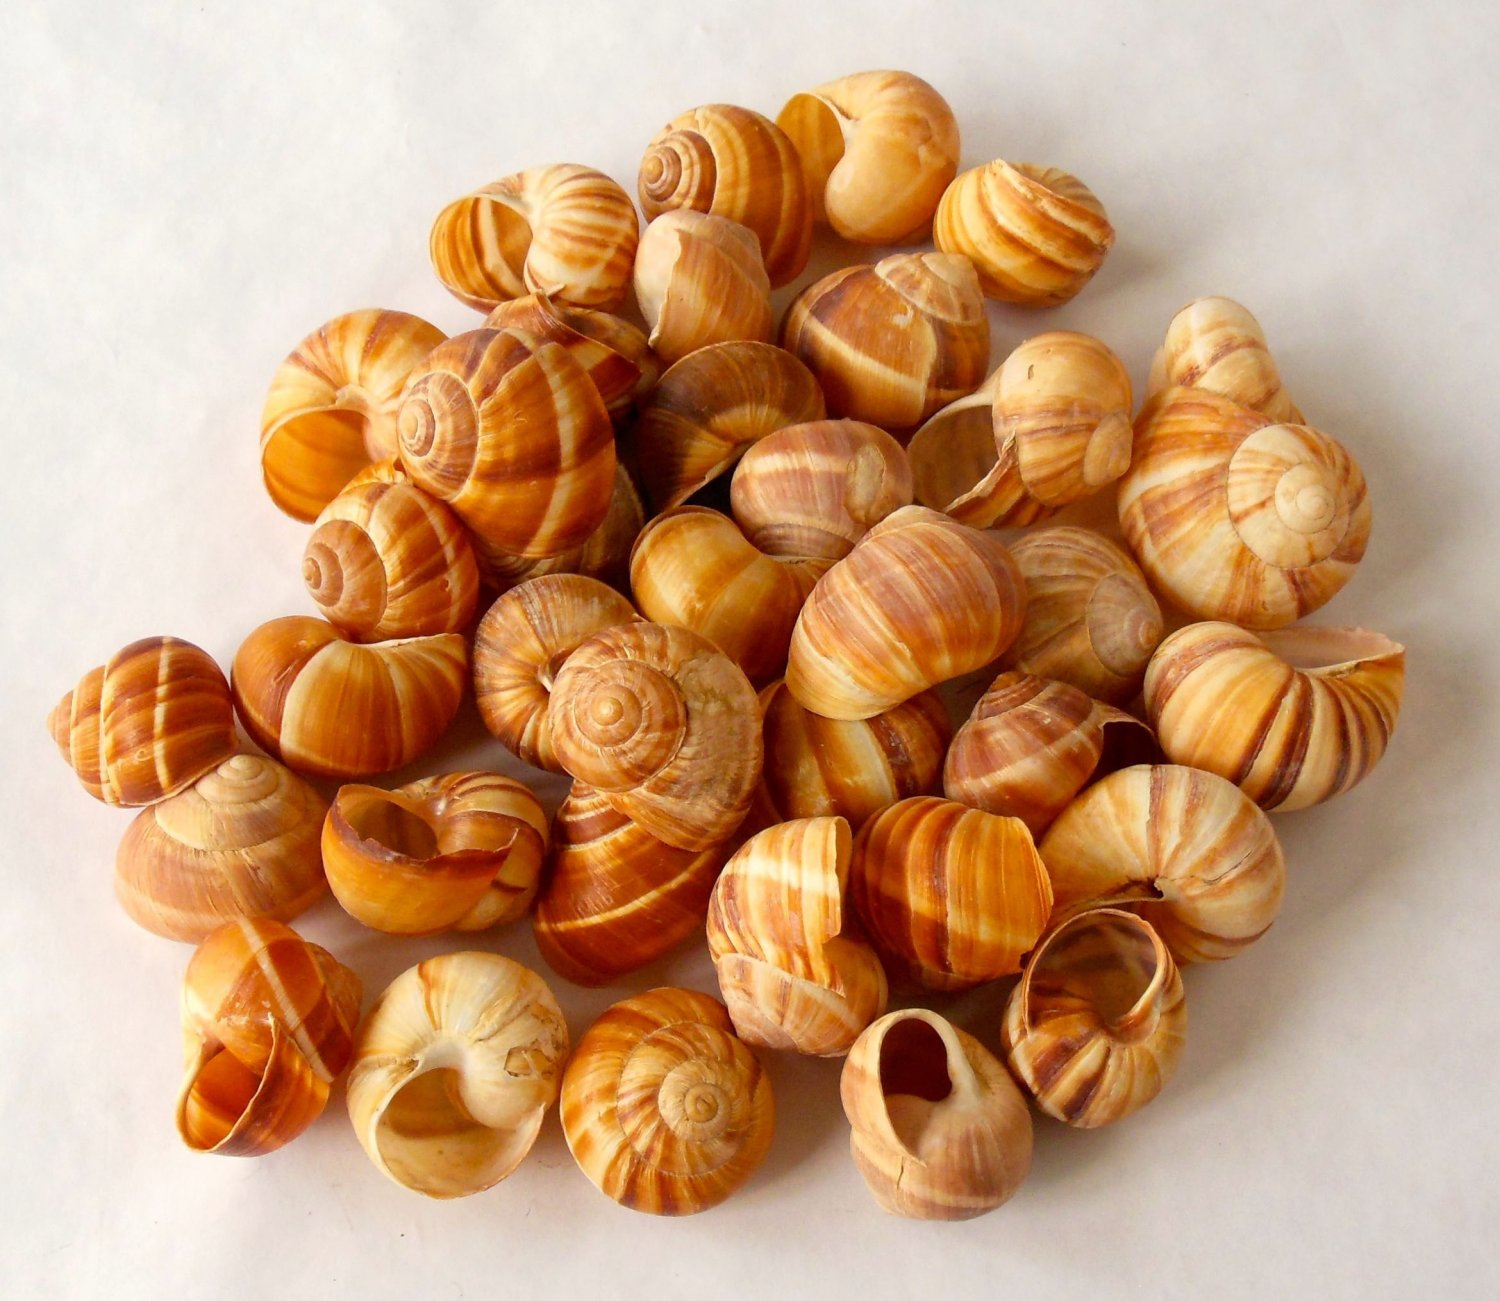 how to clean snail shells for escargot